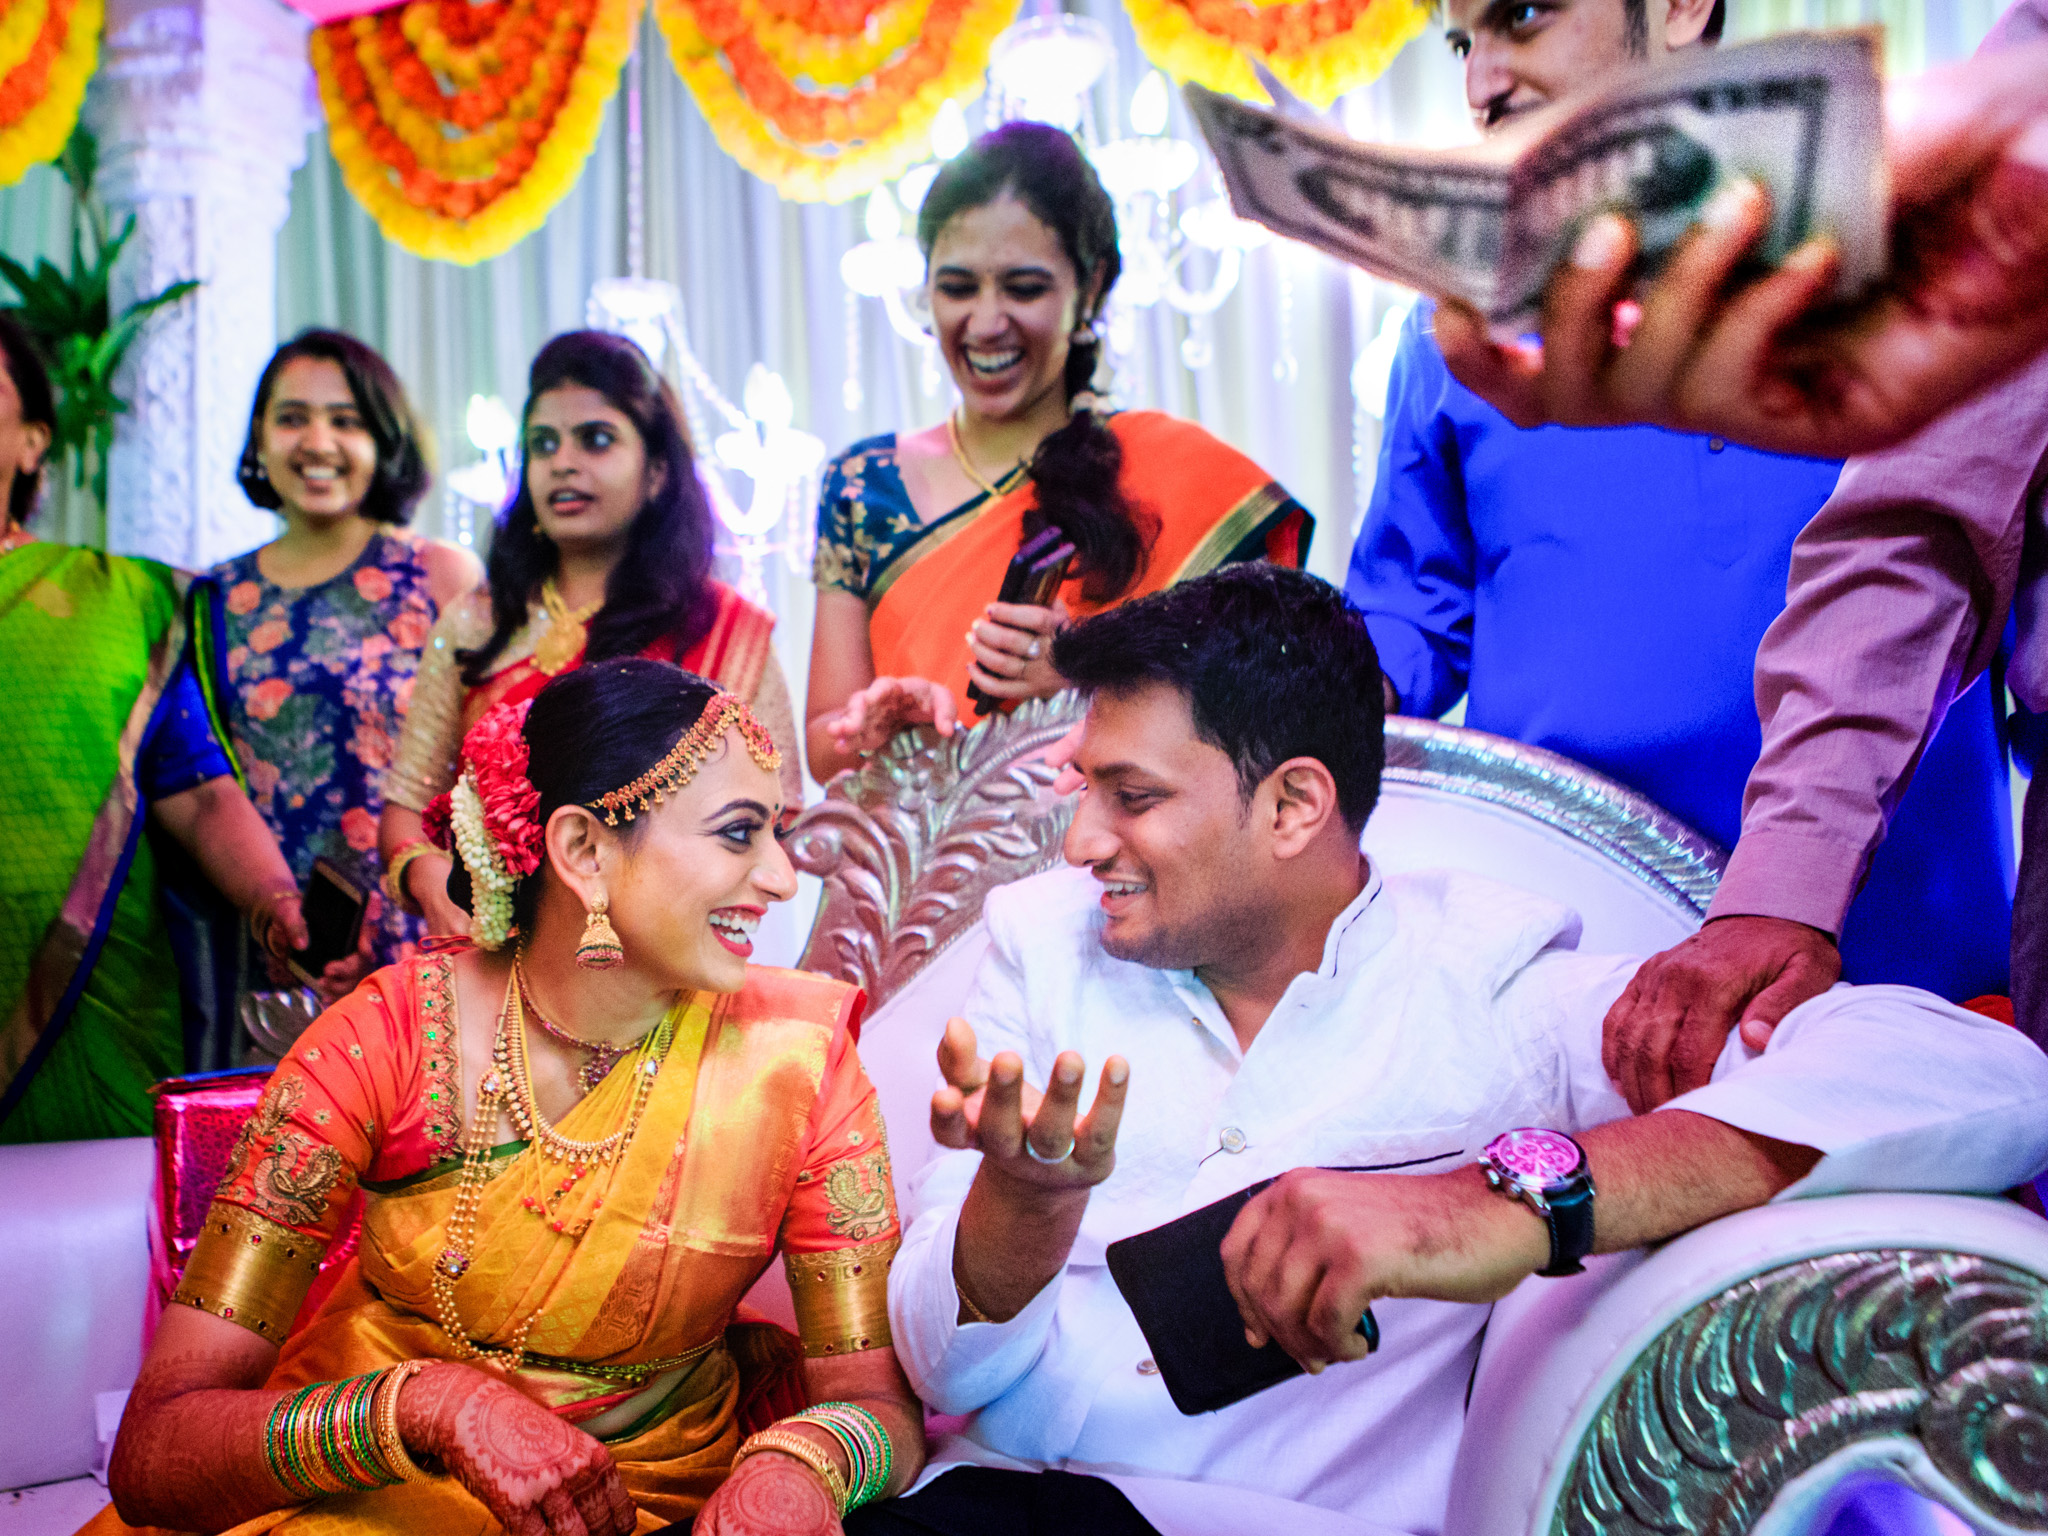 manas-neetika-best-candid-wedding-photography-0061.jpg